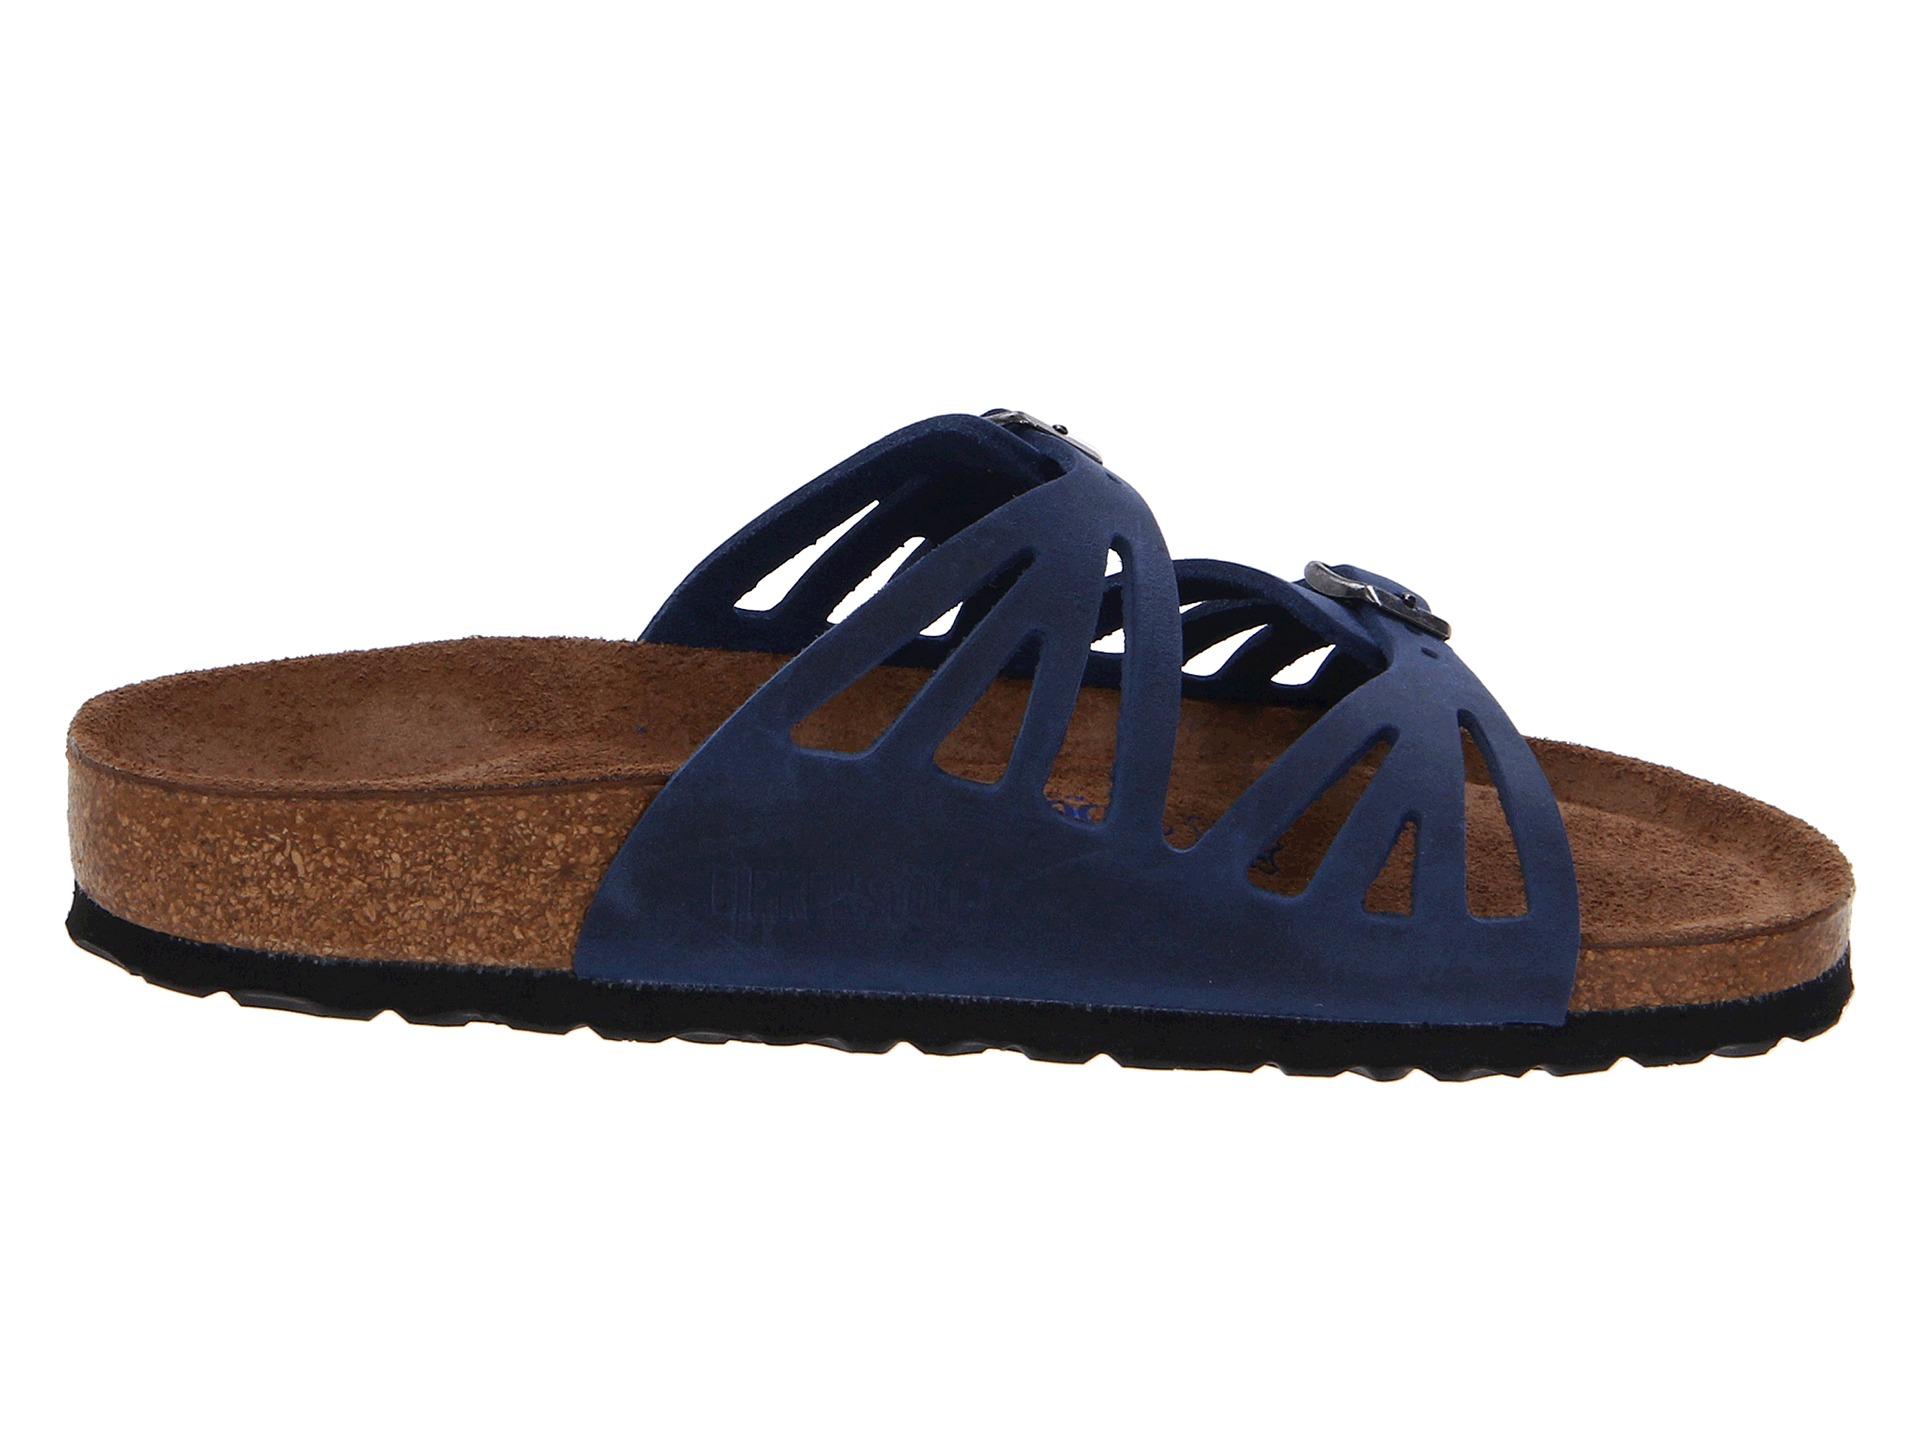 Birkenstock Granada Soft Footbed Twilight Blue Oiled Leather | Shipped Free at Zappos